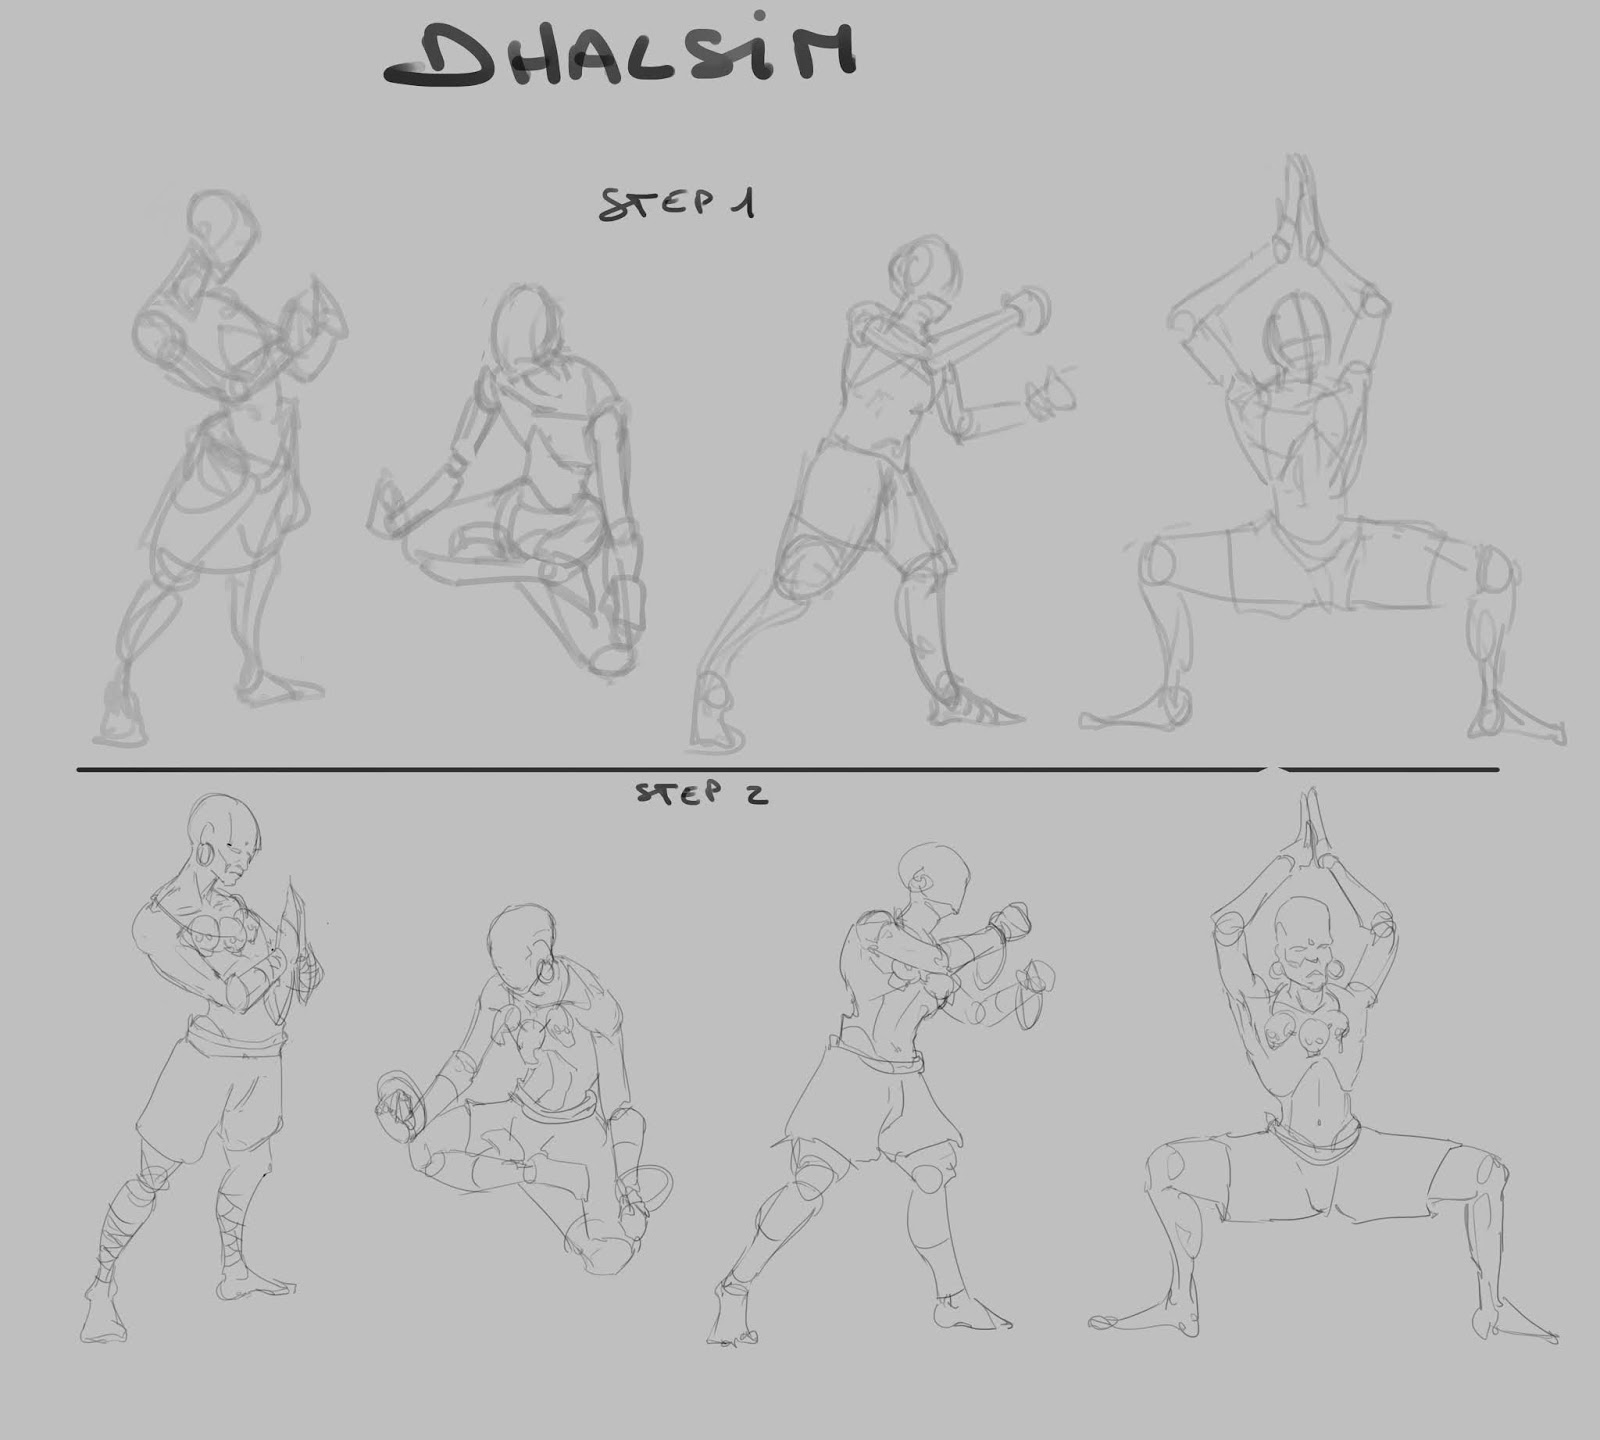 [SPOLYK] - Geometries & sketches - Page 6 Dhalsim%2Bexploration%2Bwip